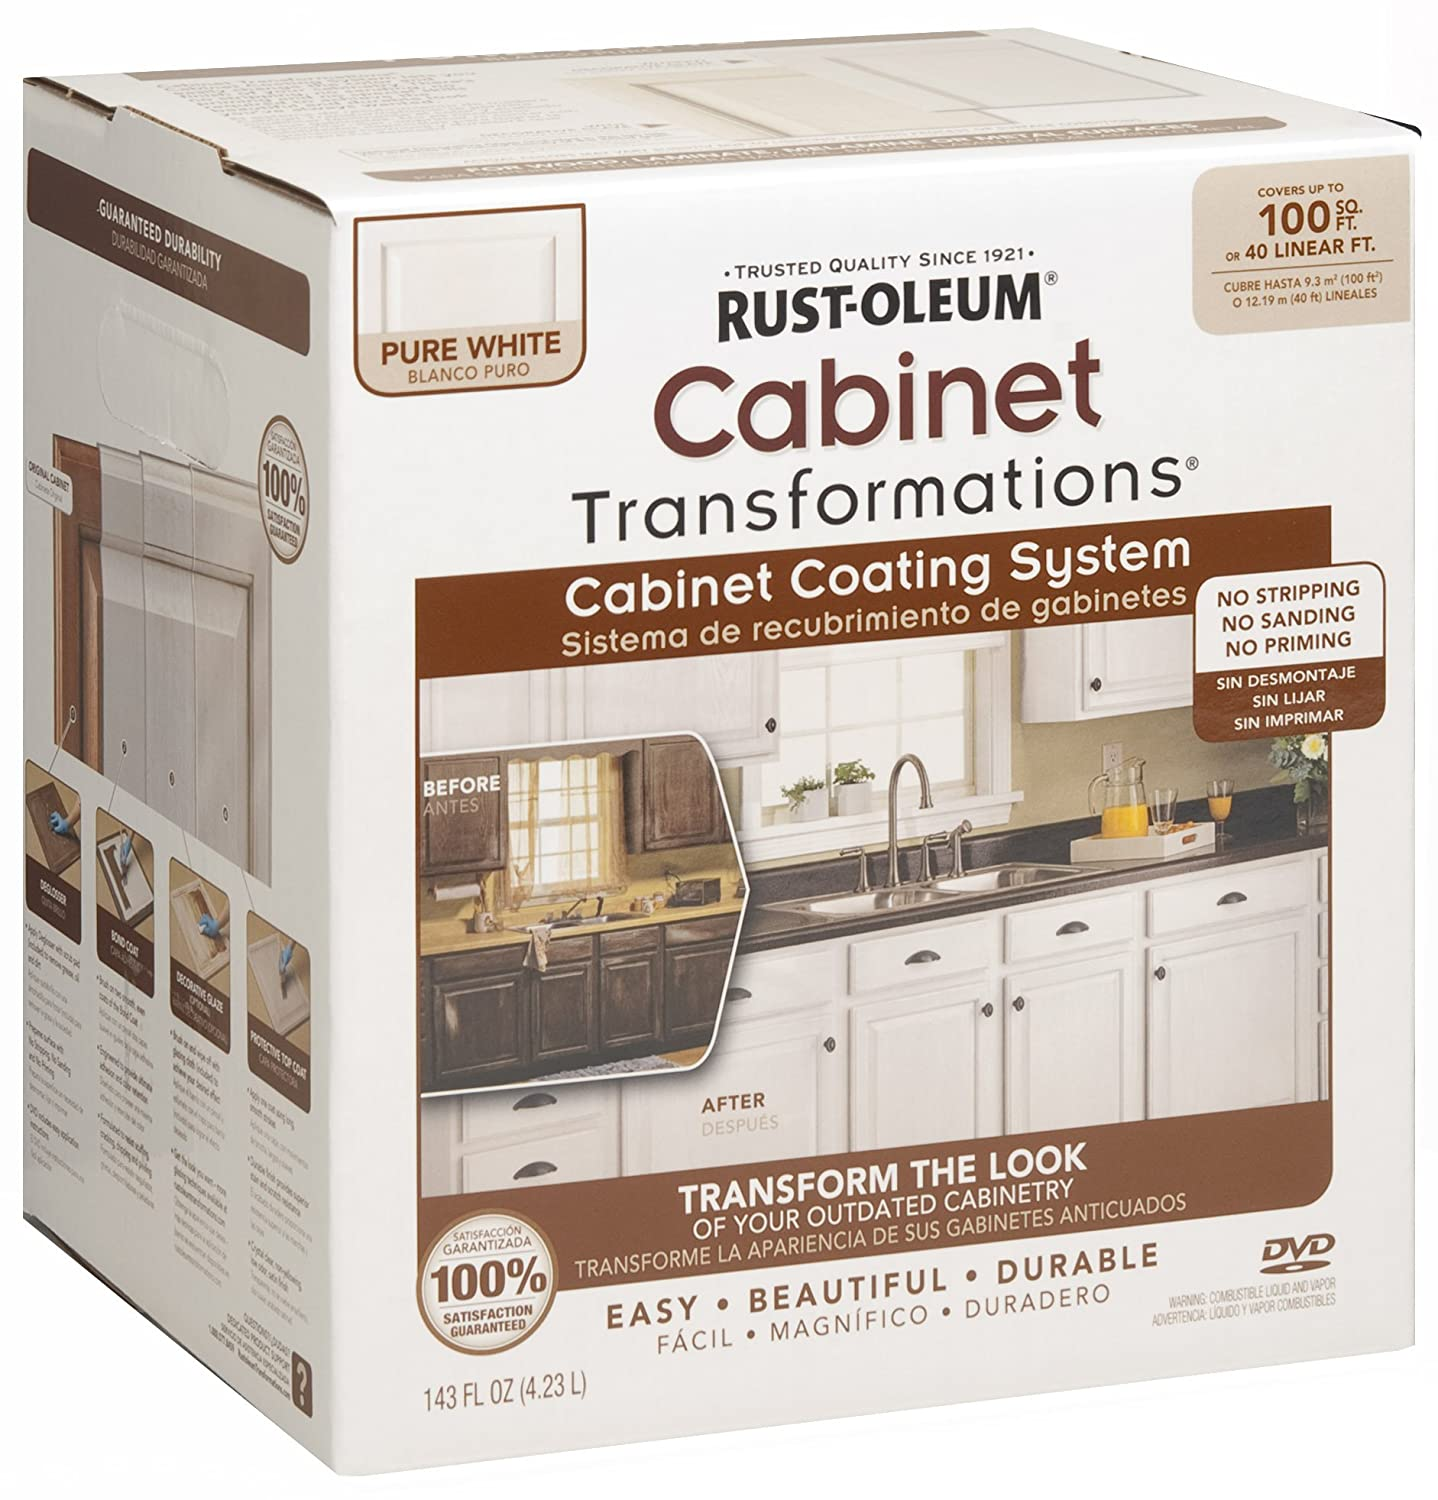 Paint Kits For Kitchen Cabinets: Kelly's Reviews: Rust-oleum Cabinet Transformations